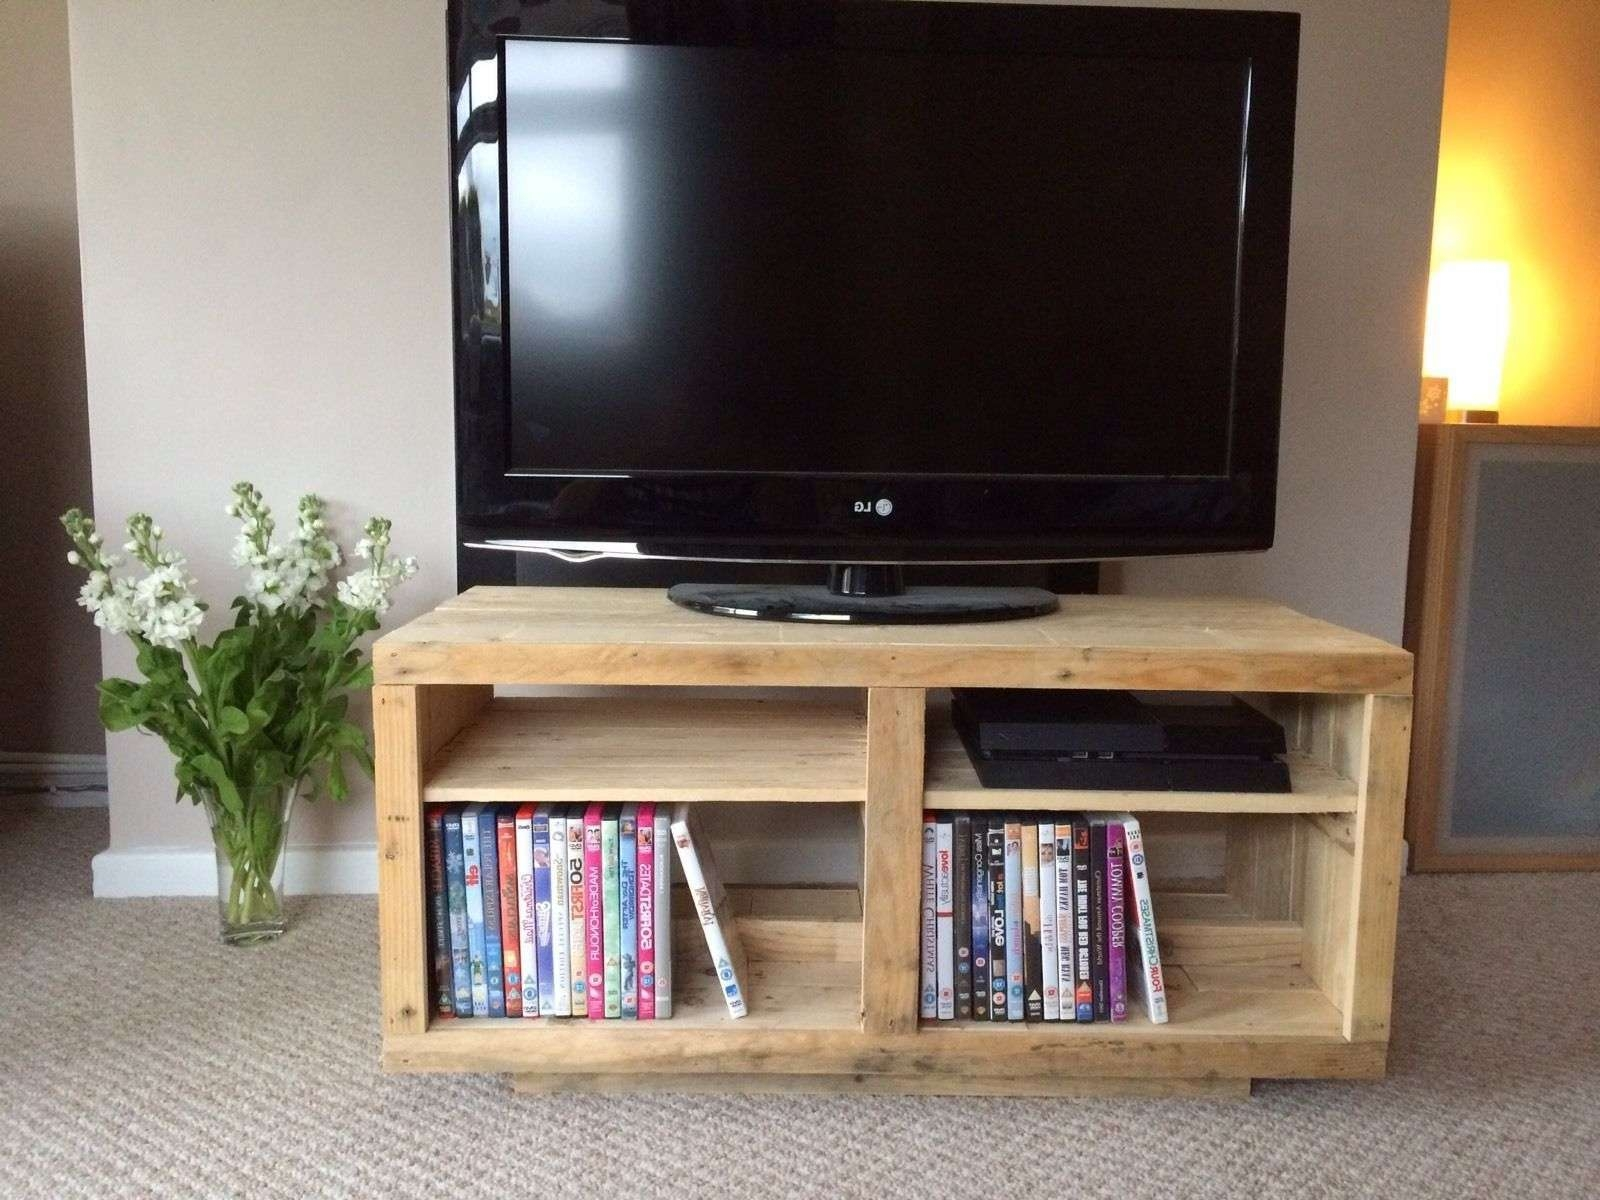 How To Build A Tv Stand Out Of Wood | Ebay Pertaining To Upright Tv Stands (View 5 of 15)